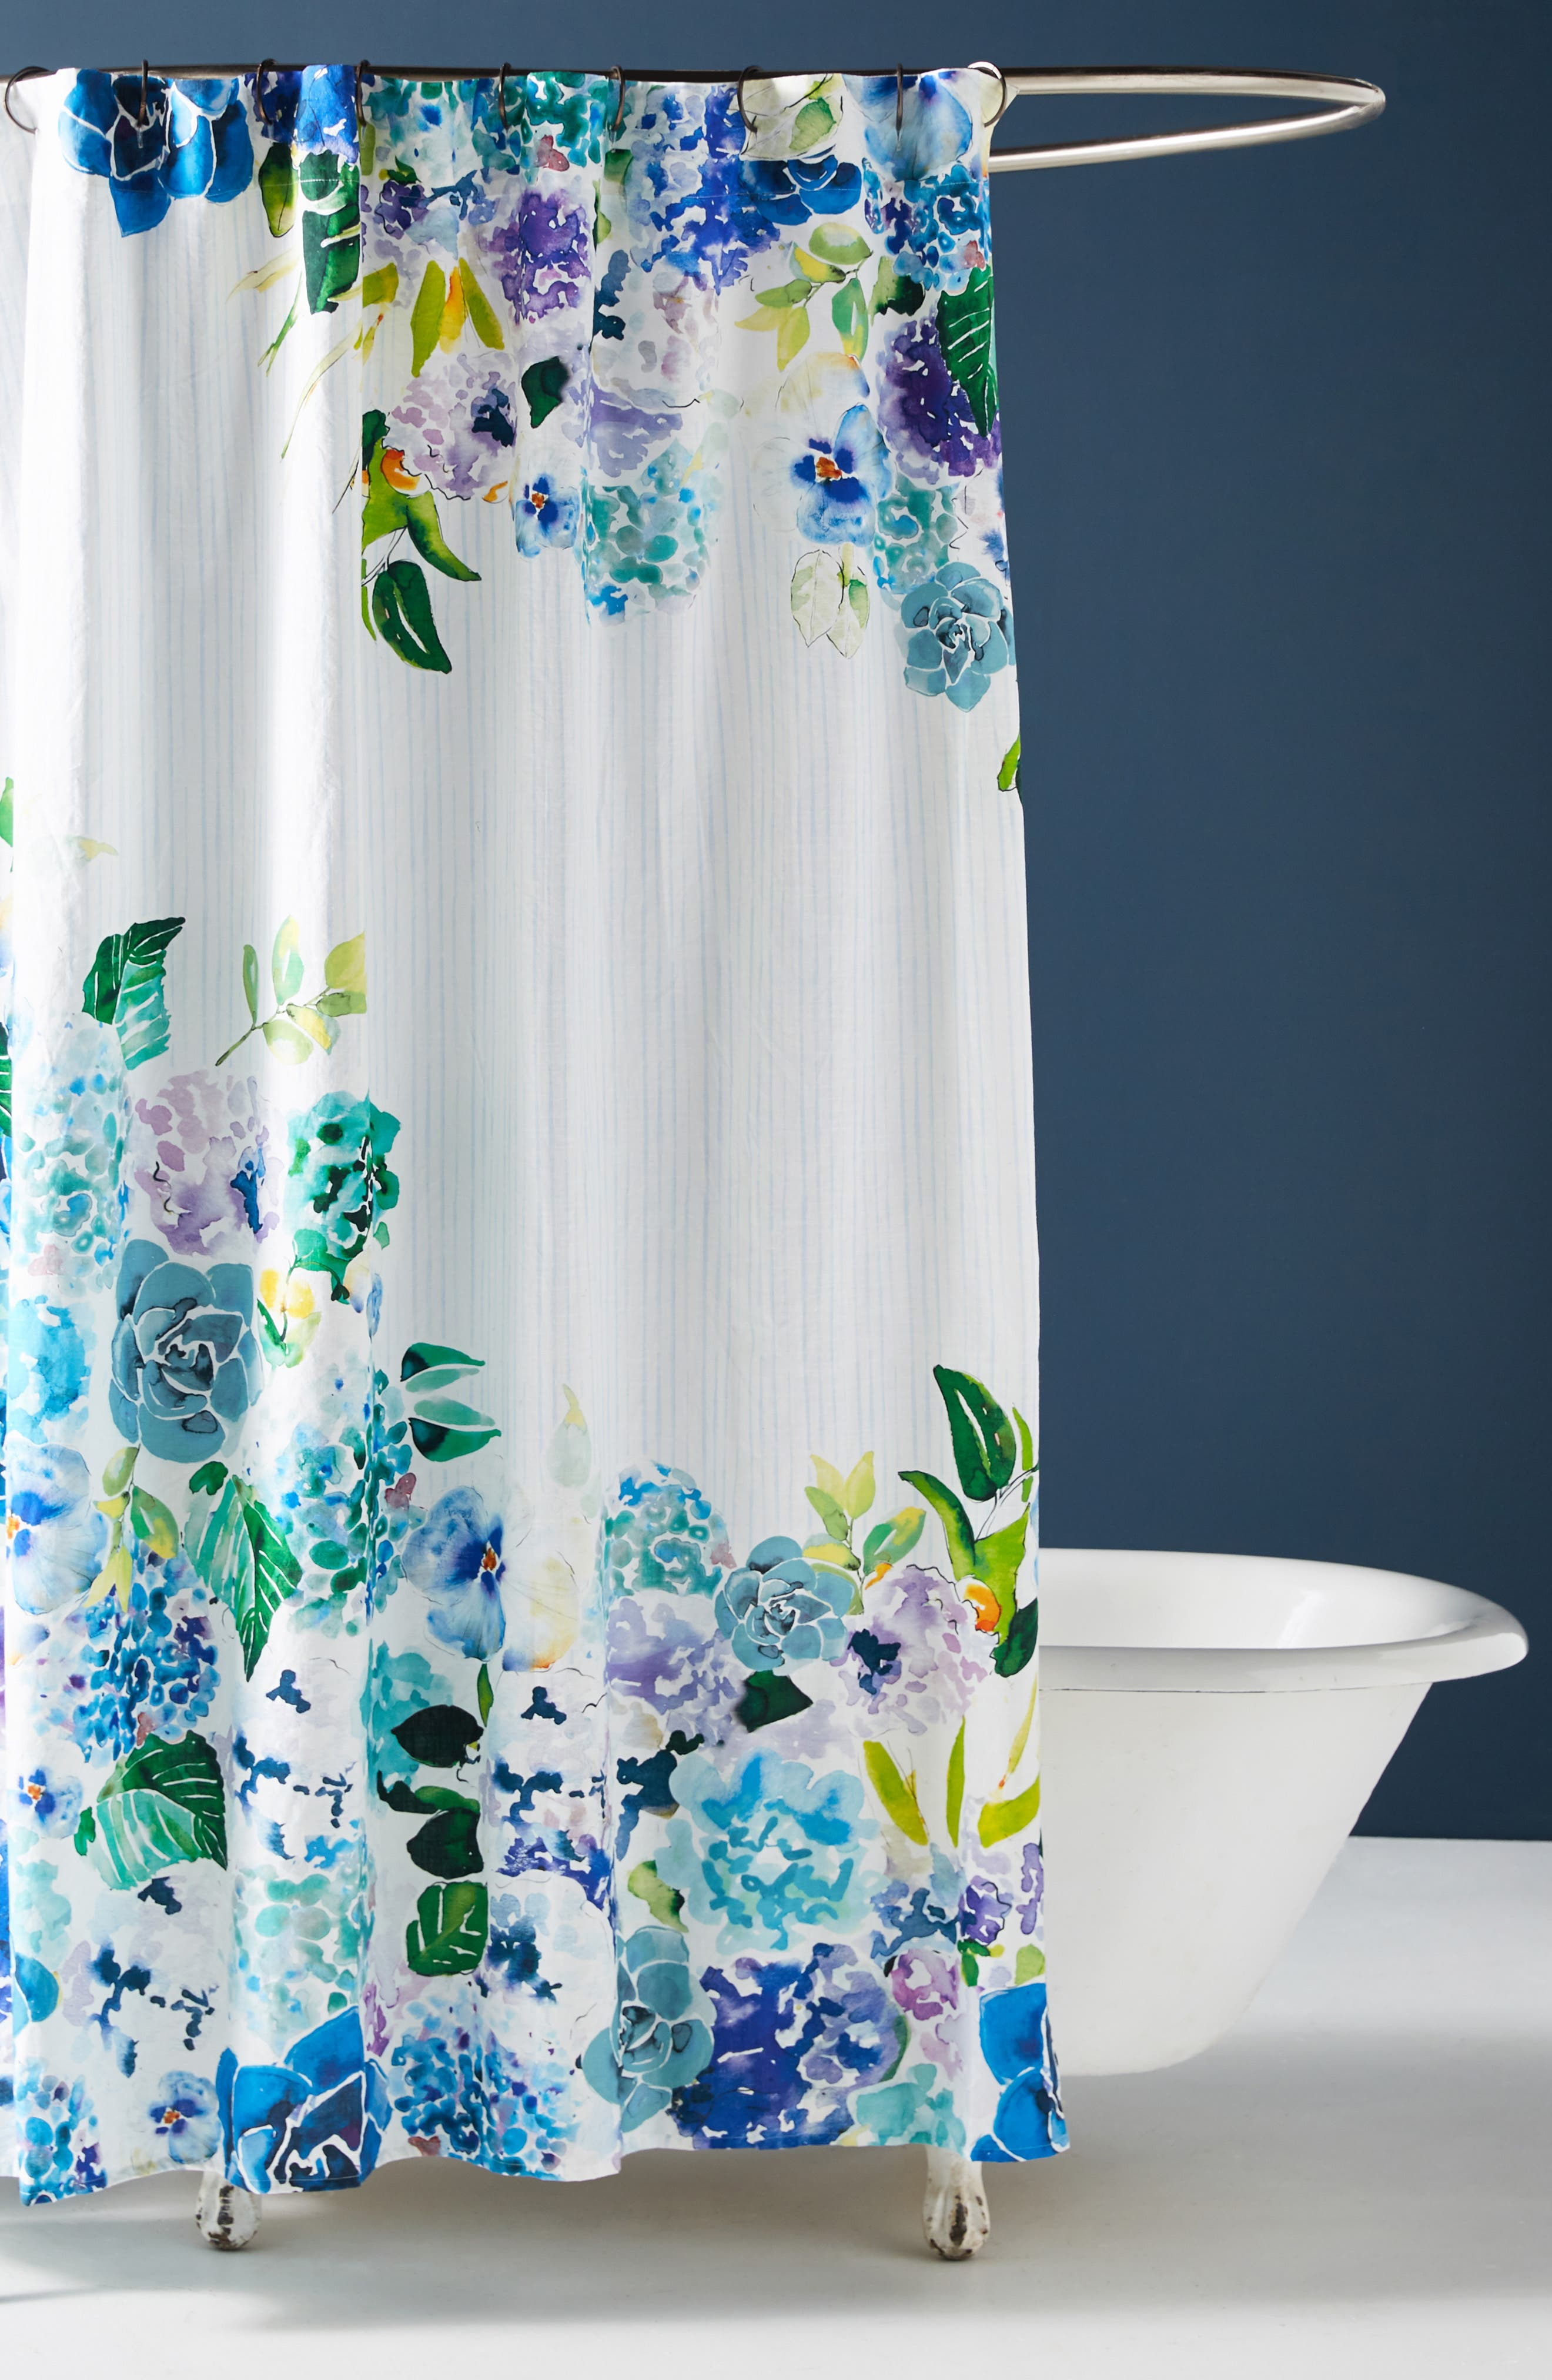 Anthropologie Sarah Hackinson Shower Curtain Size One Size  White